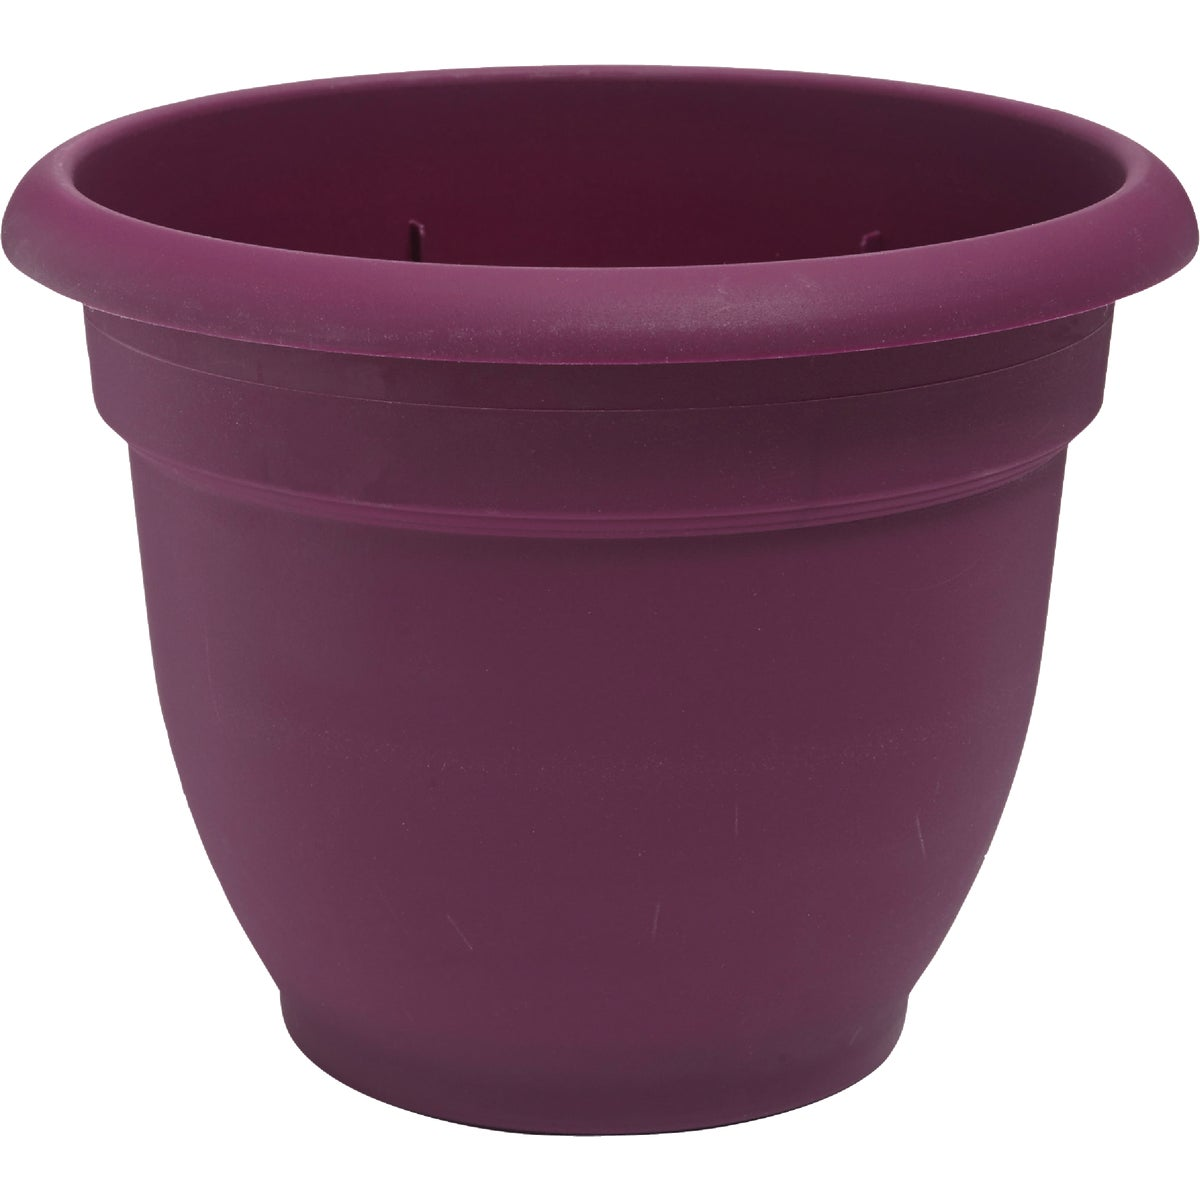 "8"" FUSIA ARIANA POT - 465083-1001 by Fiskars Brands Inc"